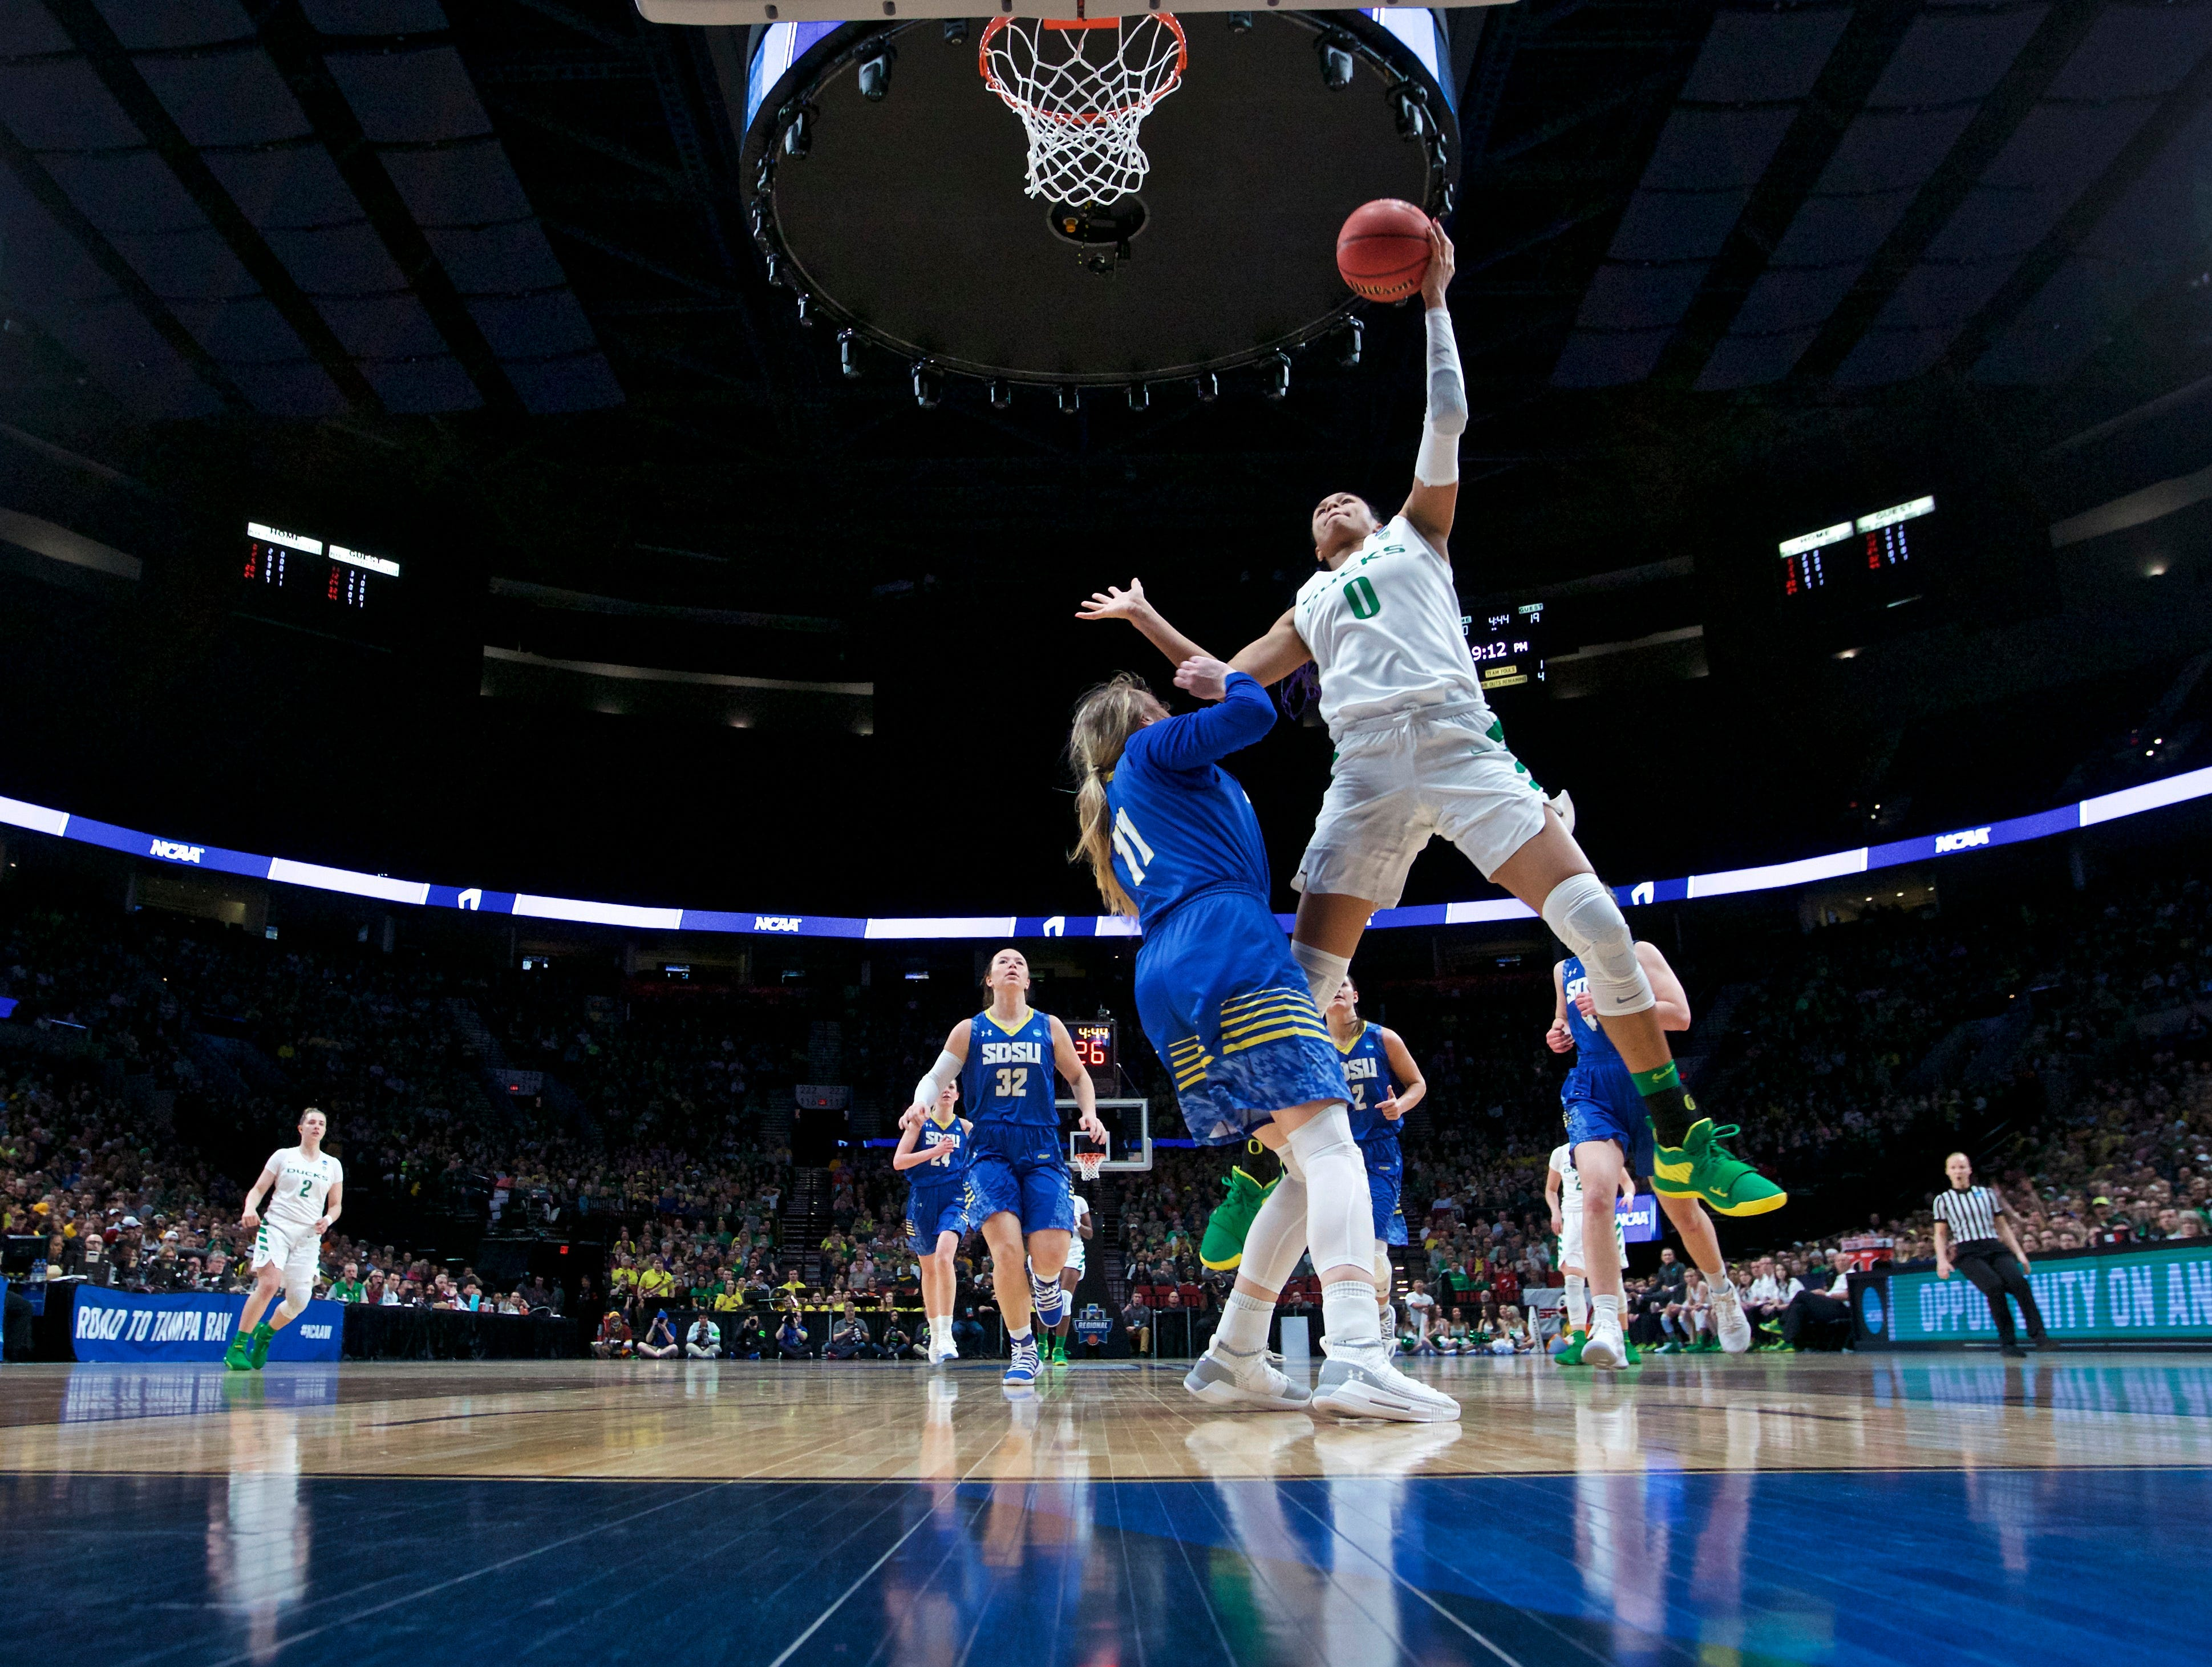 Oregon forward Satou Sabally, right, shoots over South Dakota State guard Madison Guebert during the second half of a regional semifinal in the NCAA women's college basketball tournament Friday, March 29, 2019, in Portland, Ore. Oregon won 63-53. (AP Photo/Craig Mitchelldyer)